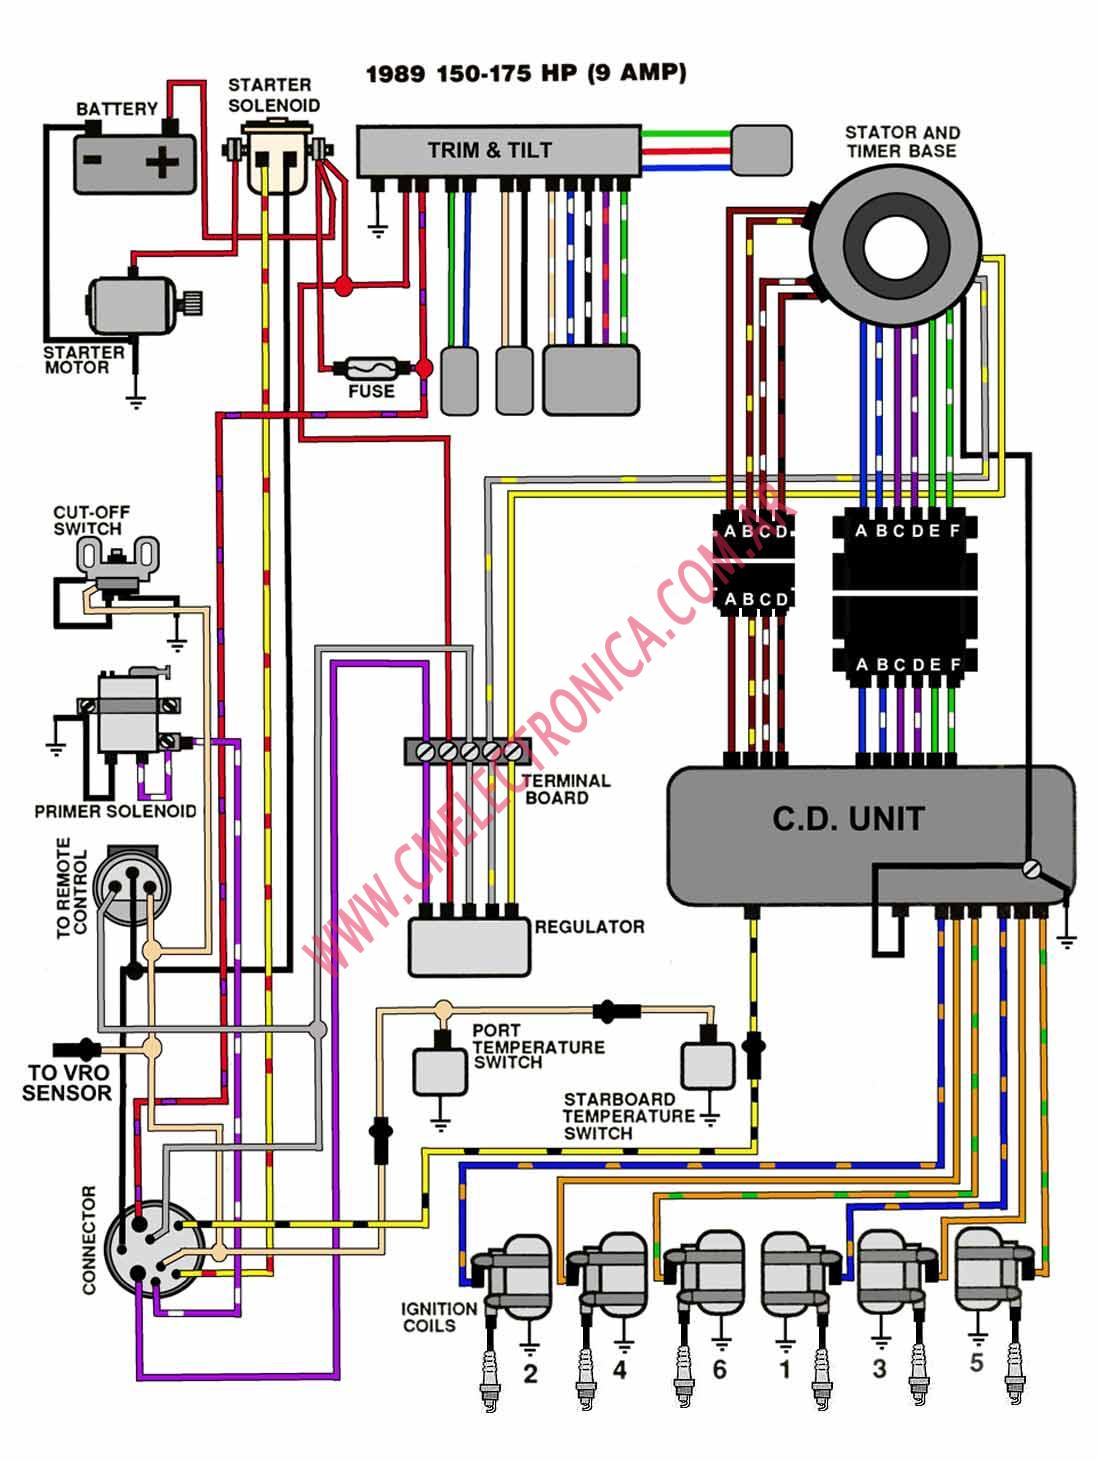 evinrude_johnson 1989_89_150_175_9 a mercury outboard wiring diagrams mastertech marin readingrat net Yamaha Outboard Wiring Diagram at eliteediting.co